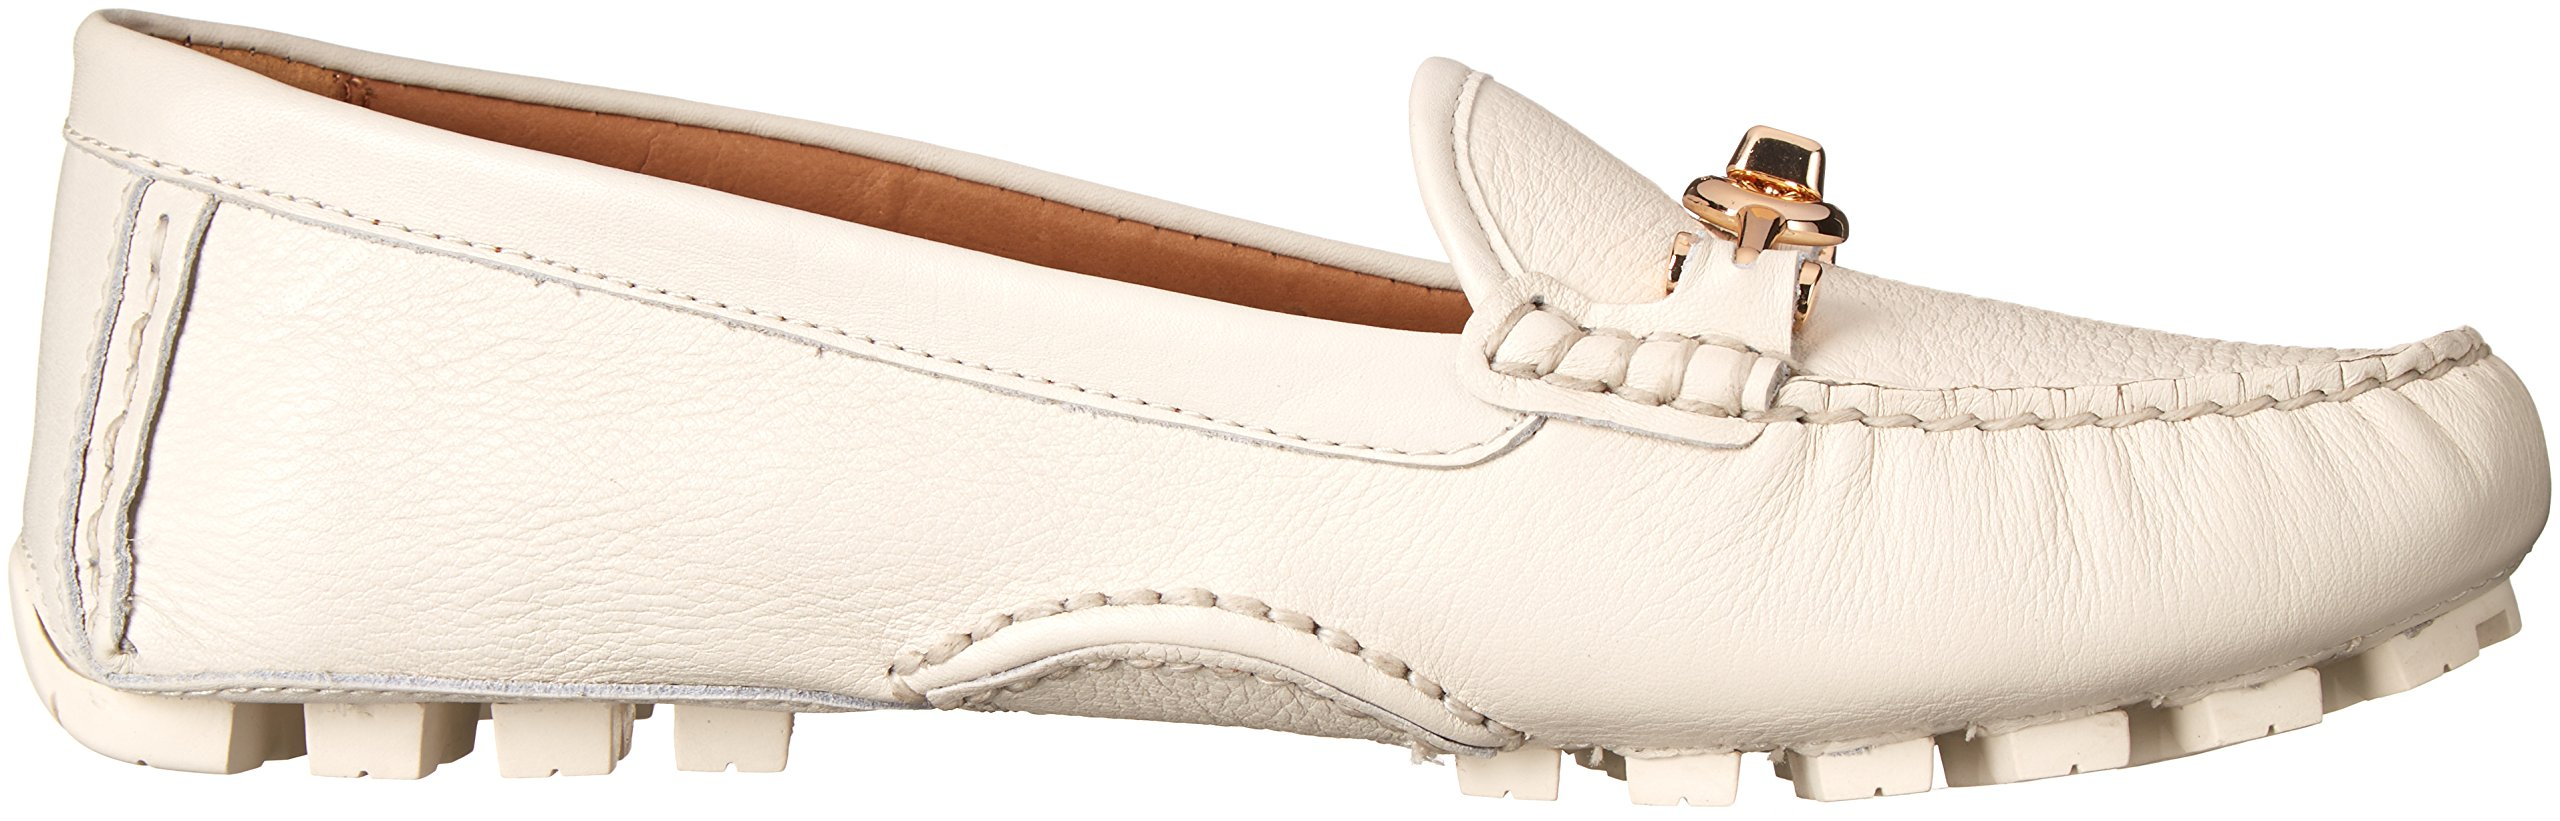 COACH Women's Arlene Chalk Pebble Grain Leather Flat by Coach (Image #7)